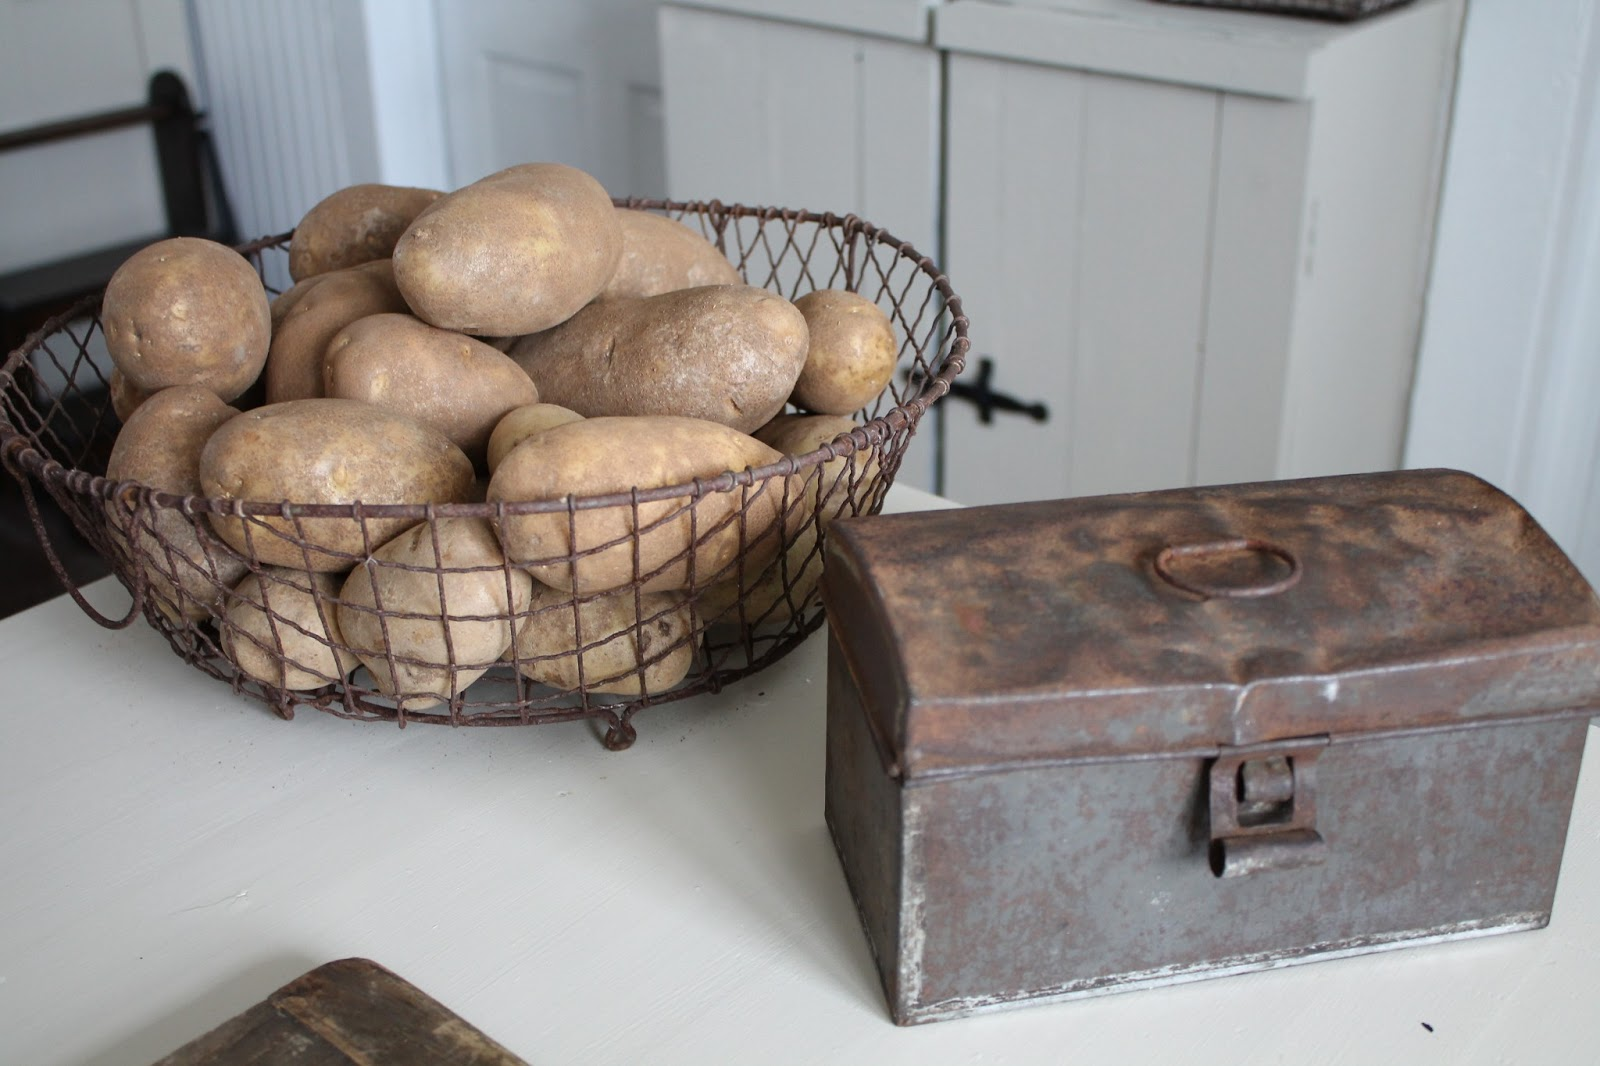 farmhouse 5540 rustic and rusty kitchen items i absolutely love the old rusty basket i purchased from blue moon collectibles i looked at this item for sometime before purchasing now i can t believe i